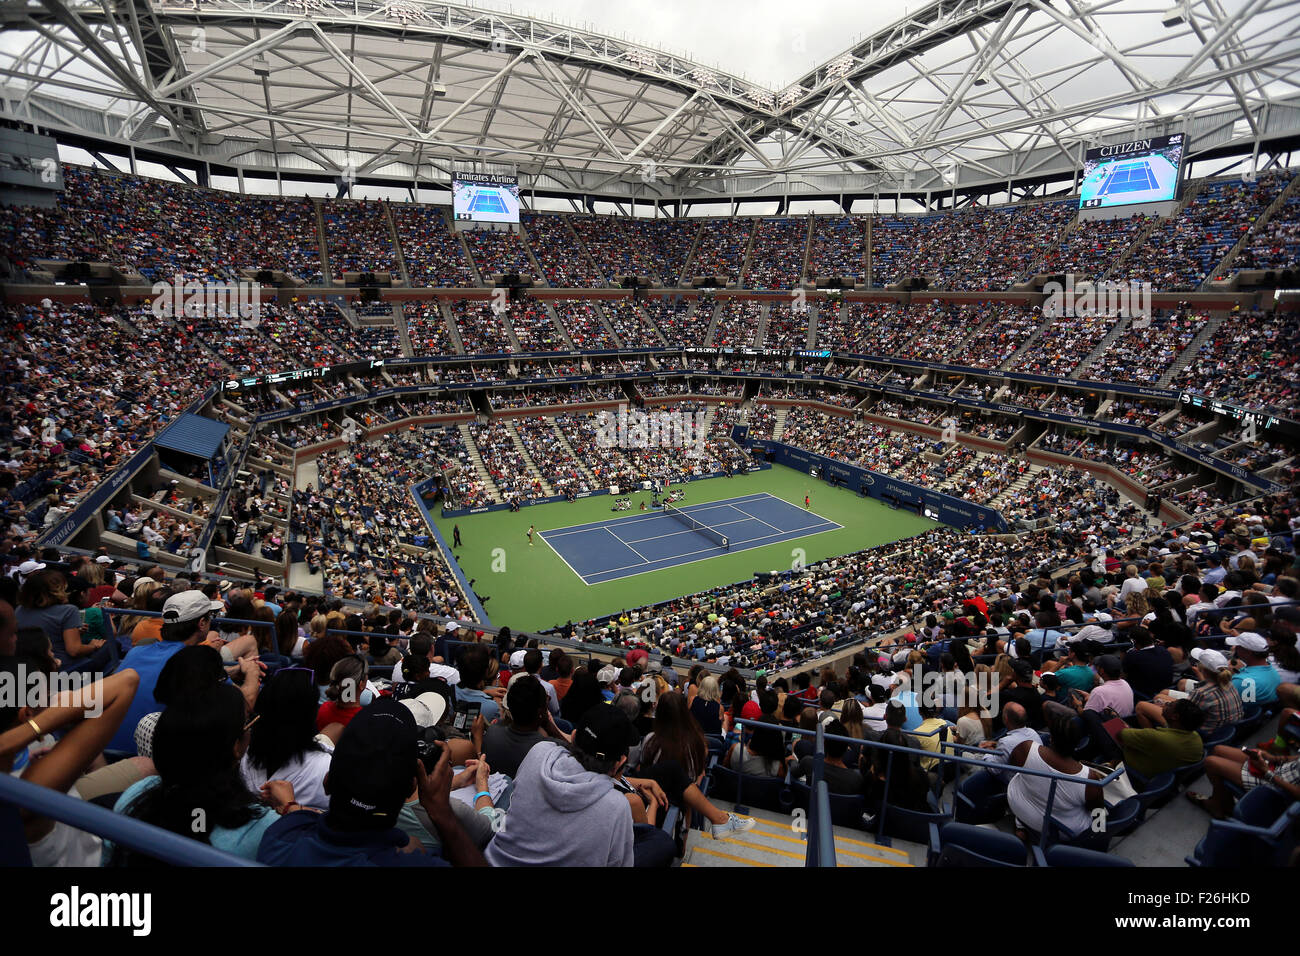 New York, USA. 12th Sep, 2015. View of the inside of Arthur Ashe Stadium during the women's final of the U.S. - Stock Image